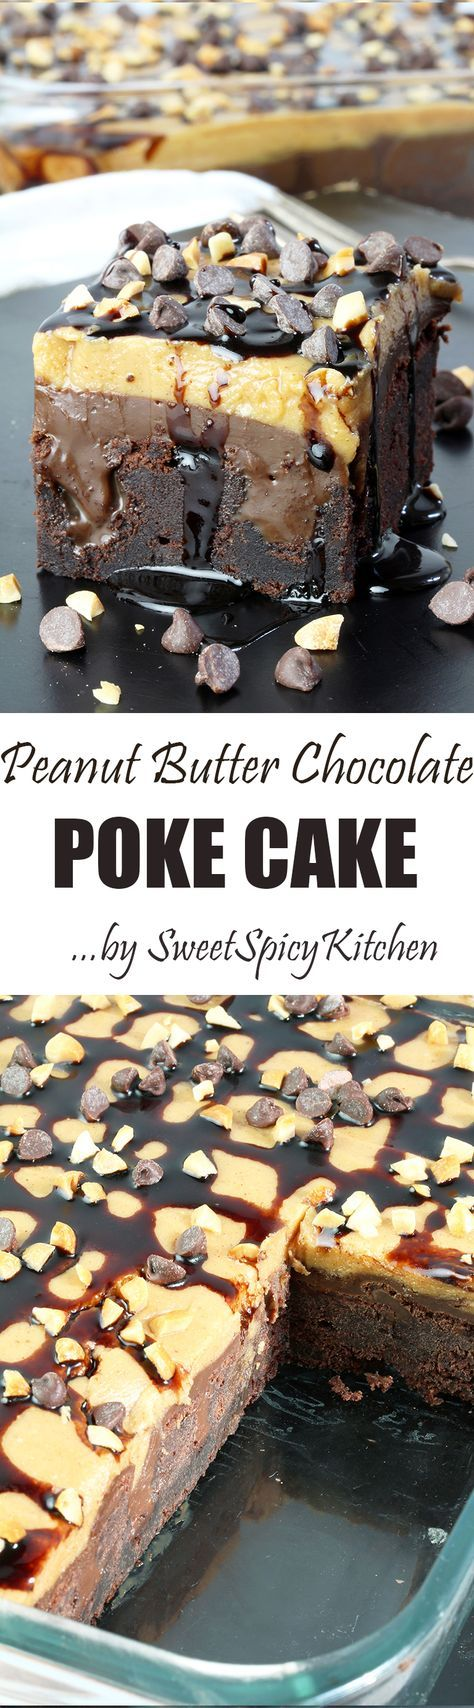 Here is the recipe for perfectly tasty Peanut Butter Chocolate Poke Cake. It takes a special place in my cookbook #chocolatepeanutbutterpokecake